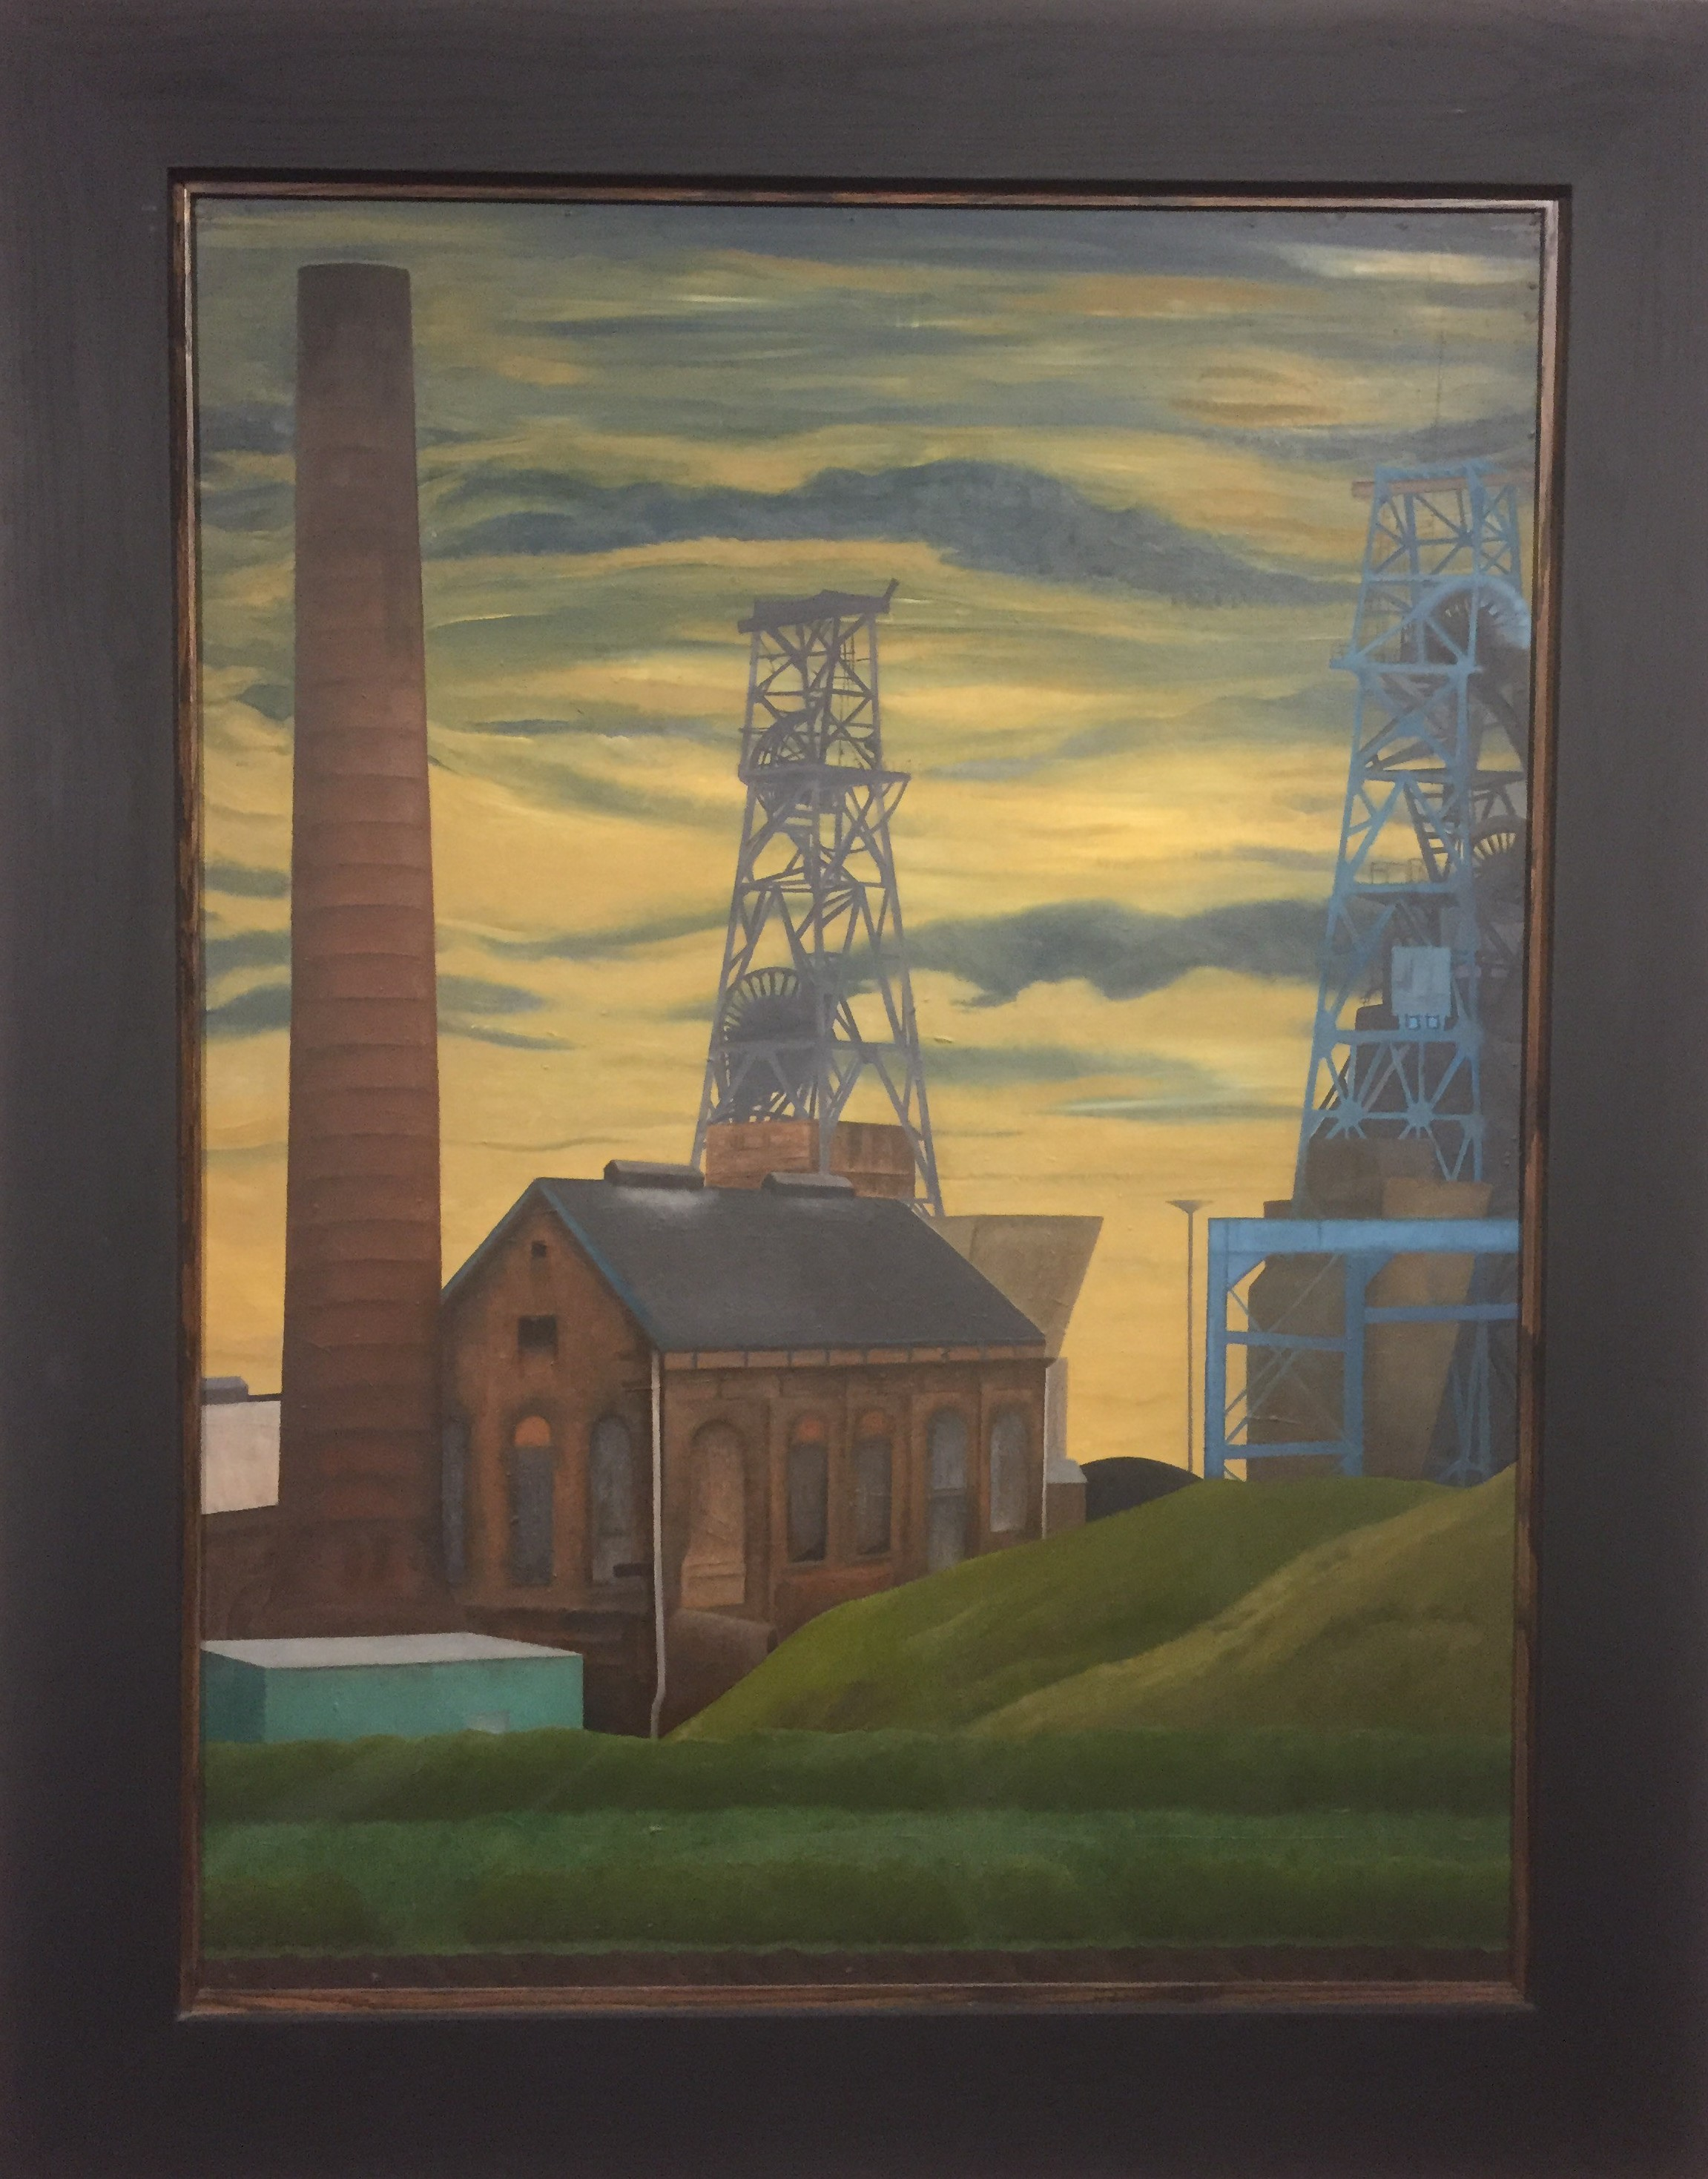 JB_Rossington_colliery_framed.jpg